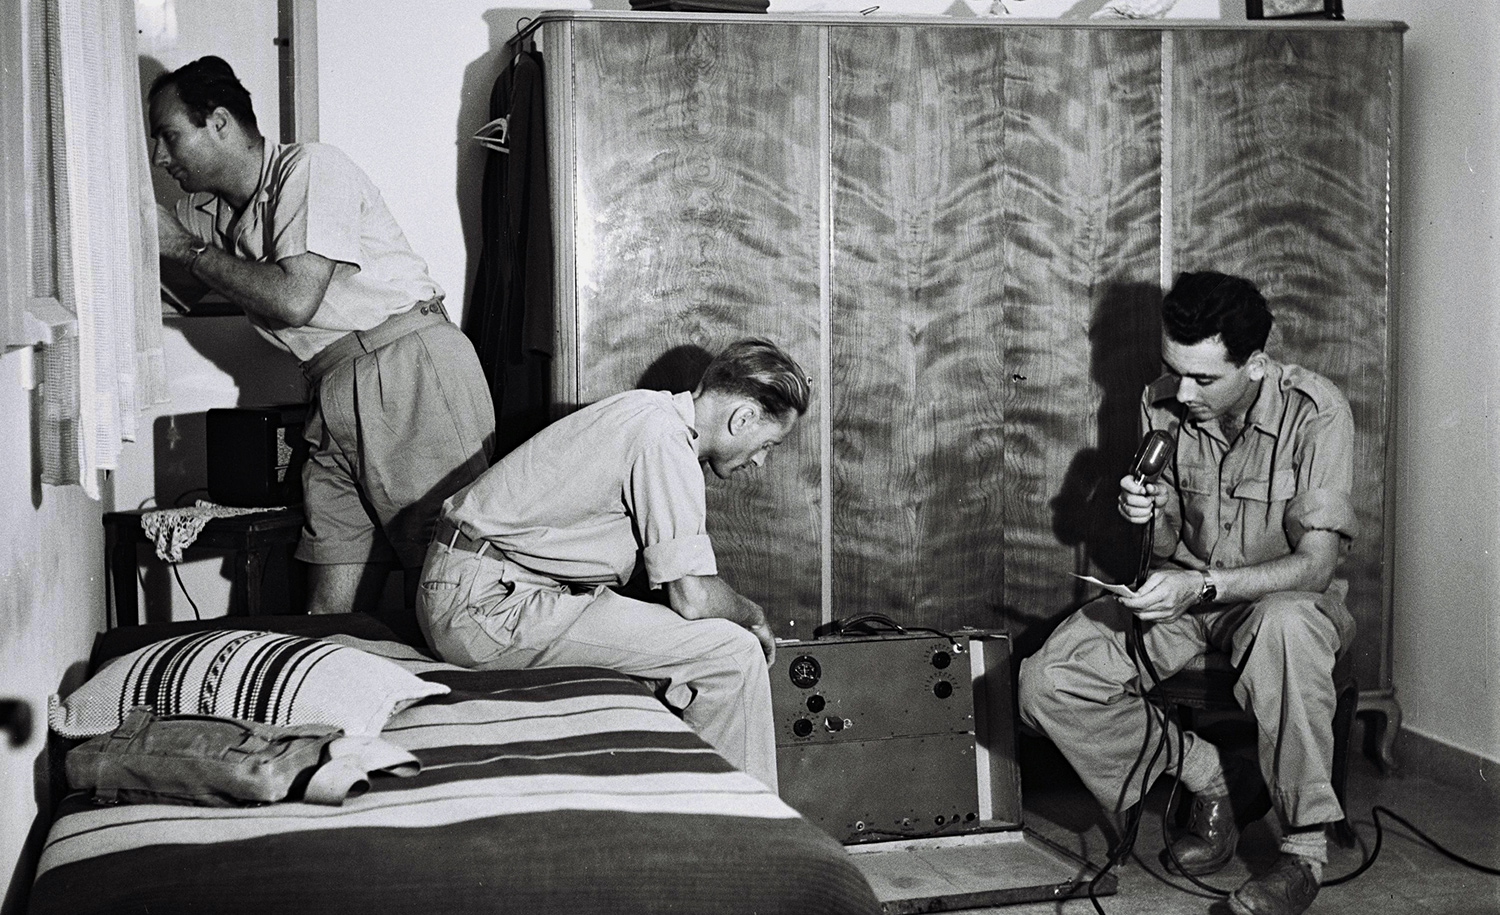 Jewish fighters at their radio in an undisclosed hideout on April 10, 1948, in the weeks before the founding of the state of Israel. Zoltan Kluger/GPO via Getty Images.